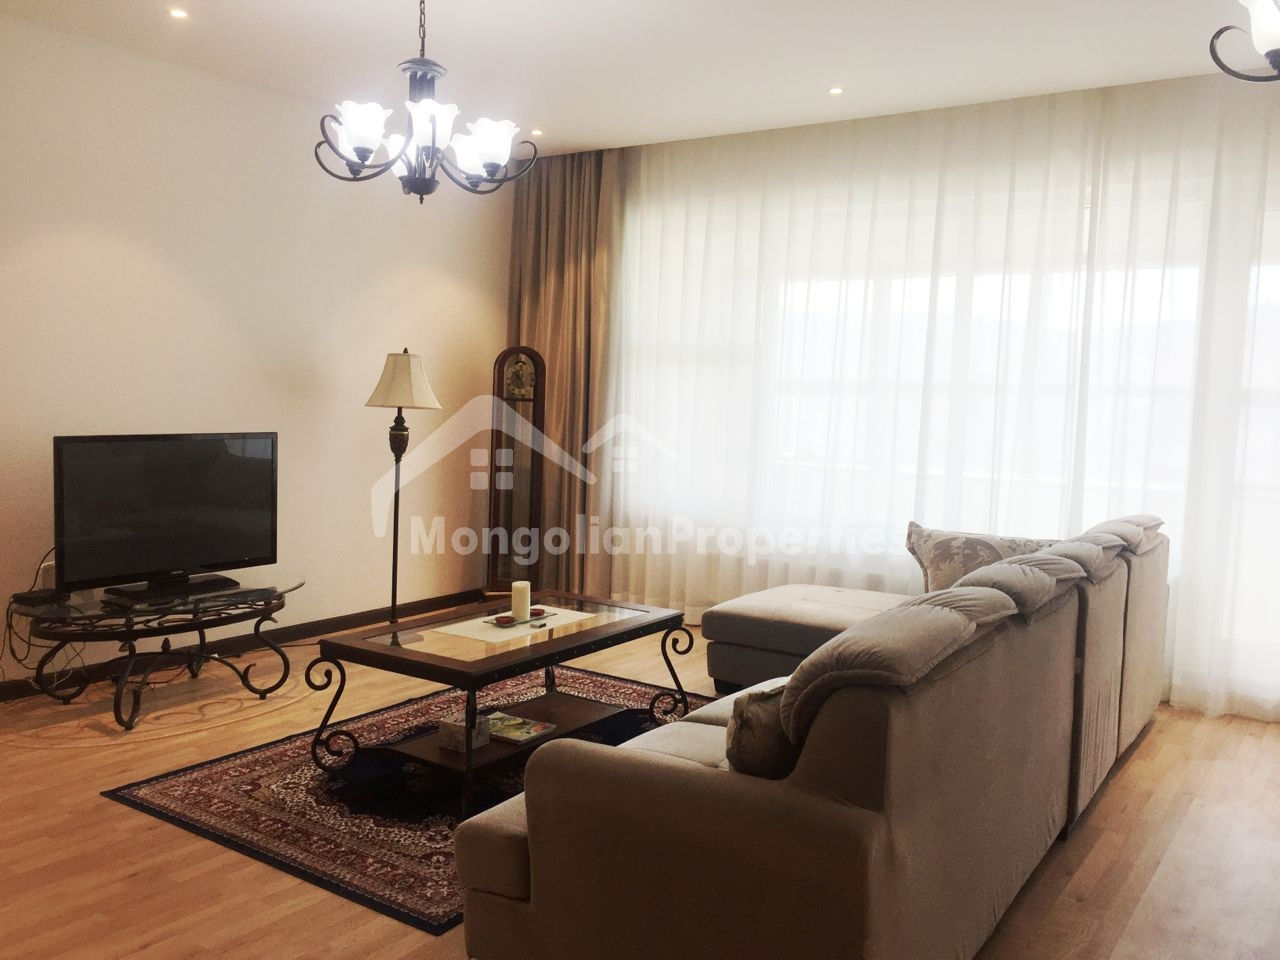 Amazing View, Modern, Brand new 2 bedroom apartment is for rent in Romana Residence